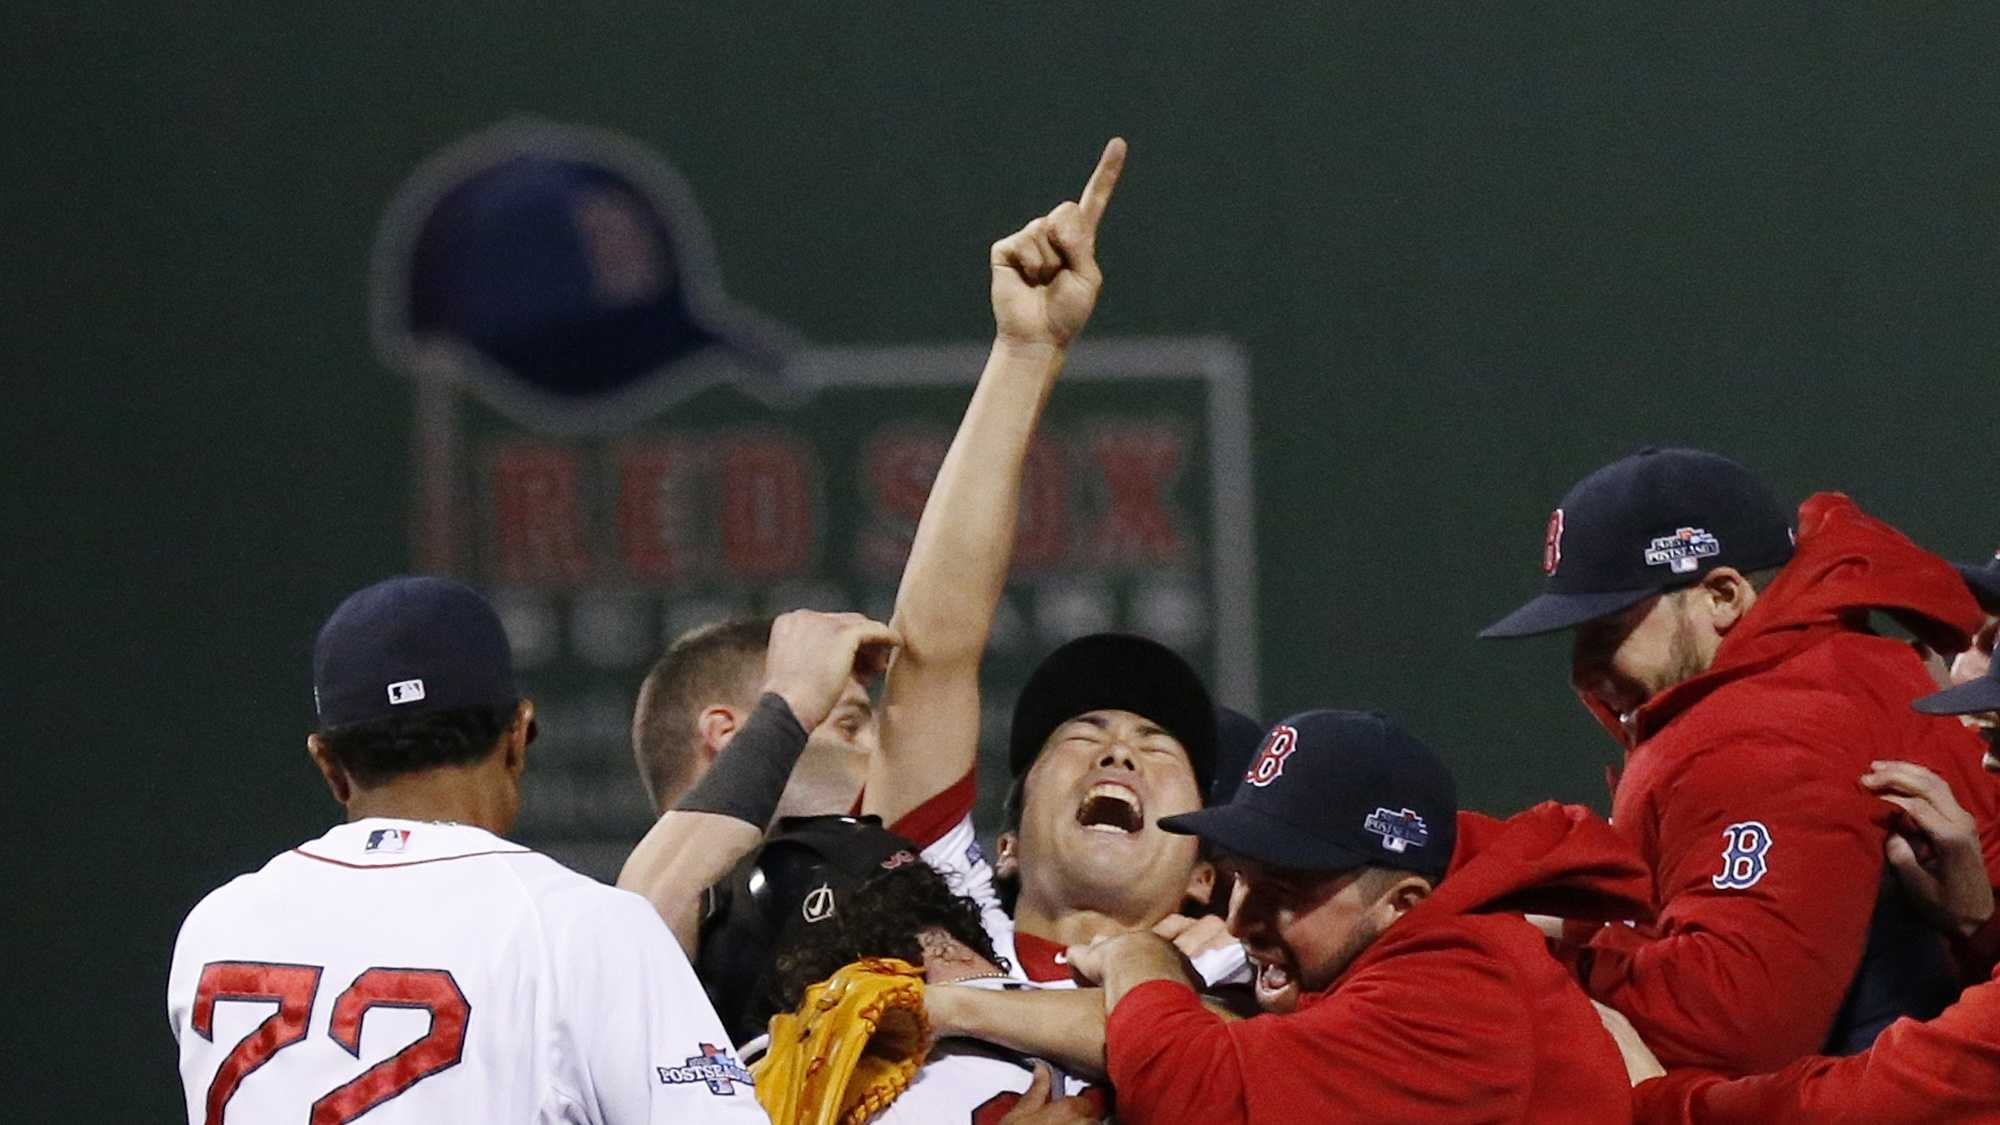 Boston Red Sox relief pitcher Koji Uehara, center, celebrates with teammates after the Red Sox 5-2 beat the Detroit Tigers in Game 6 of the American League baseball championship series on Saturday, Oct. 19, 2013, in Boston. The Red Sox advance to the World Series.